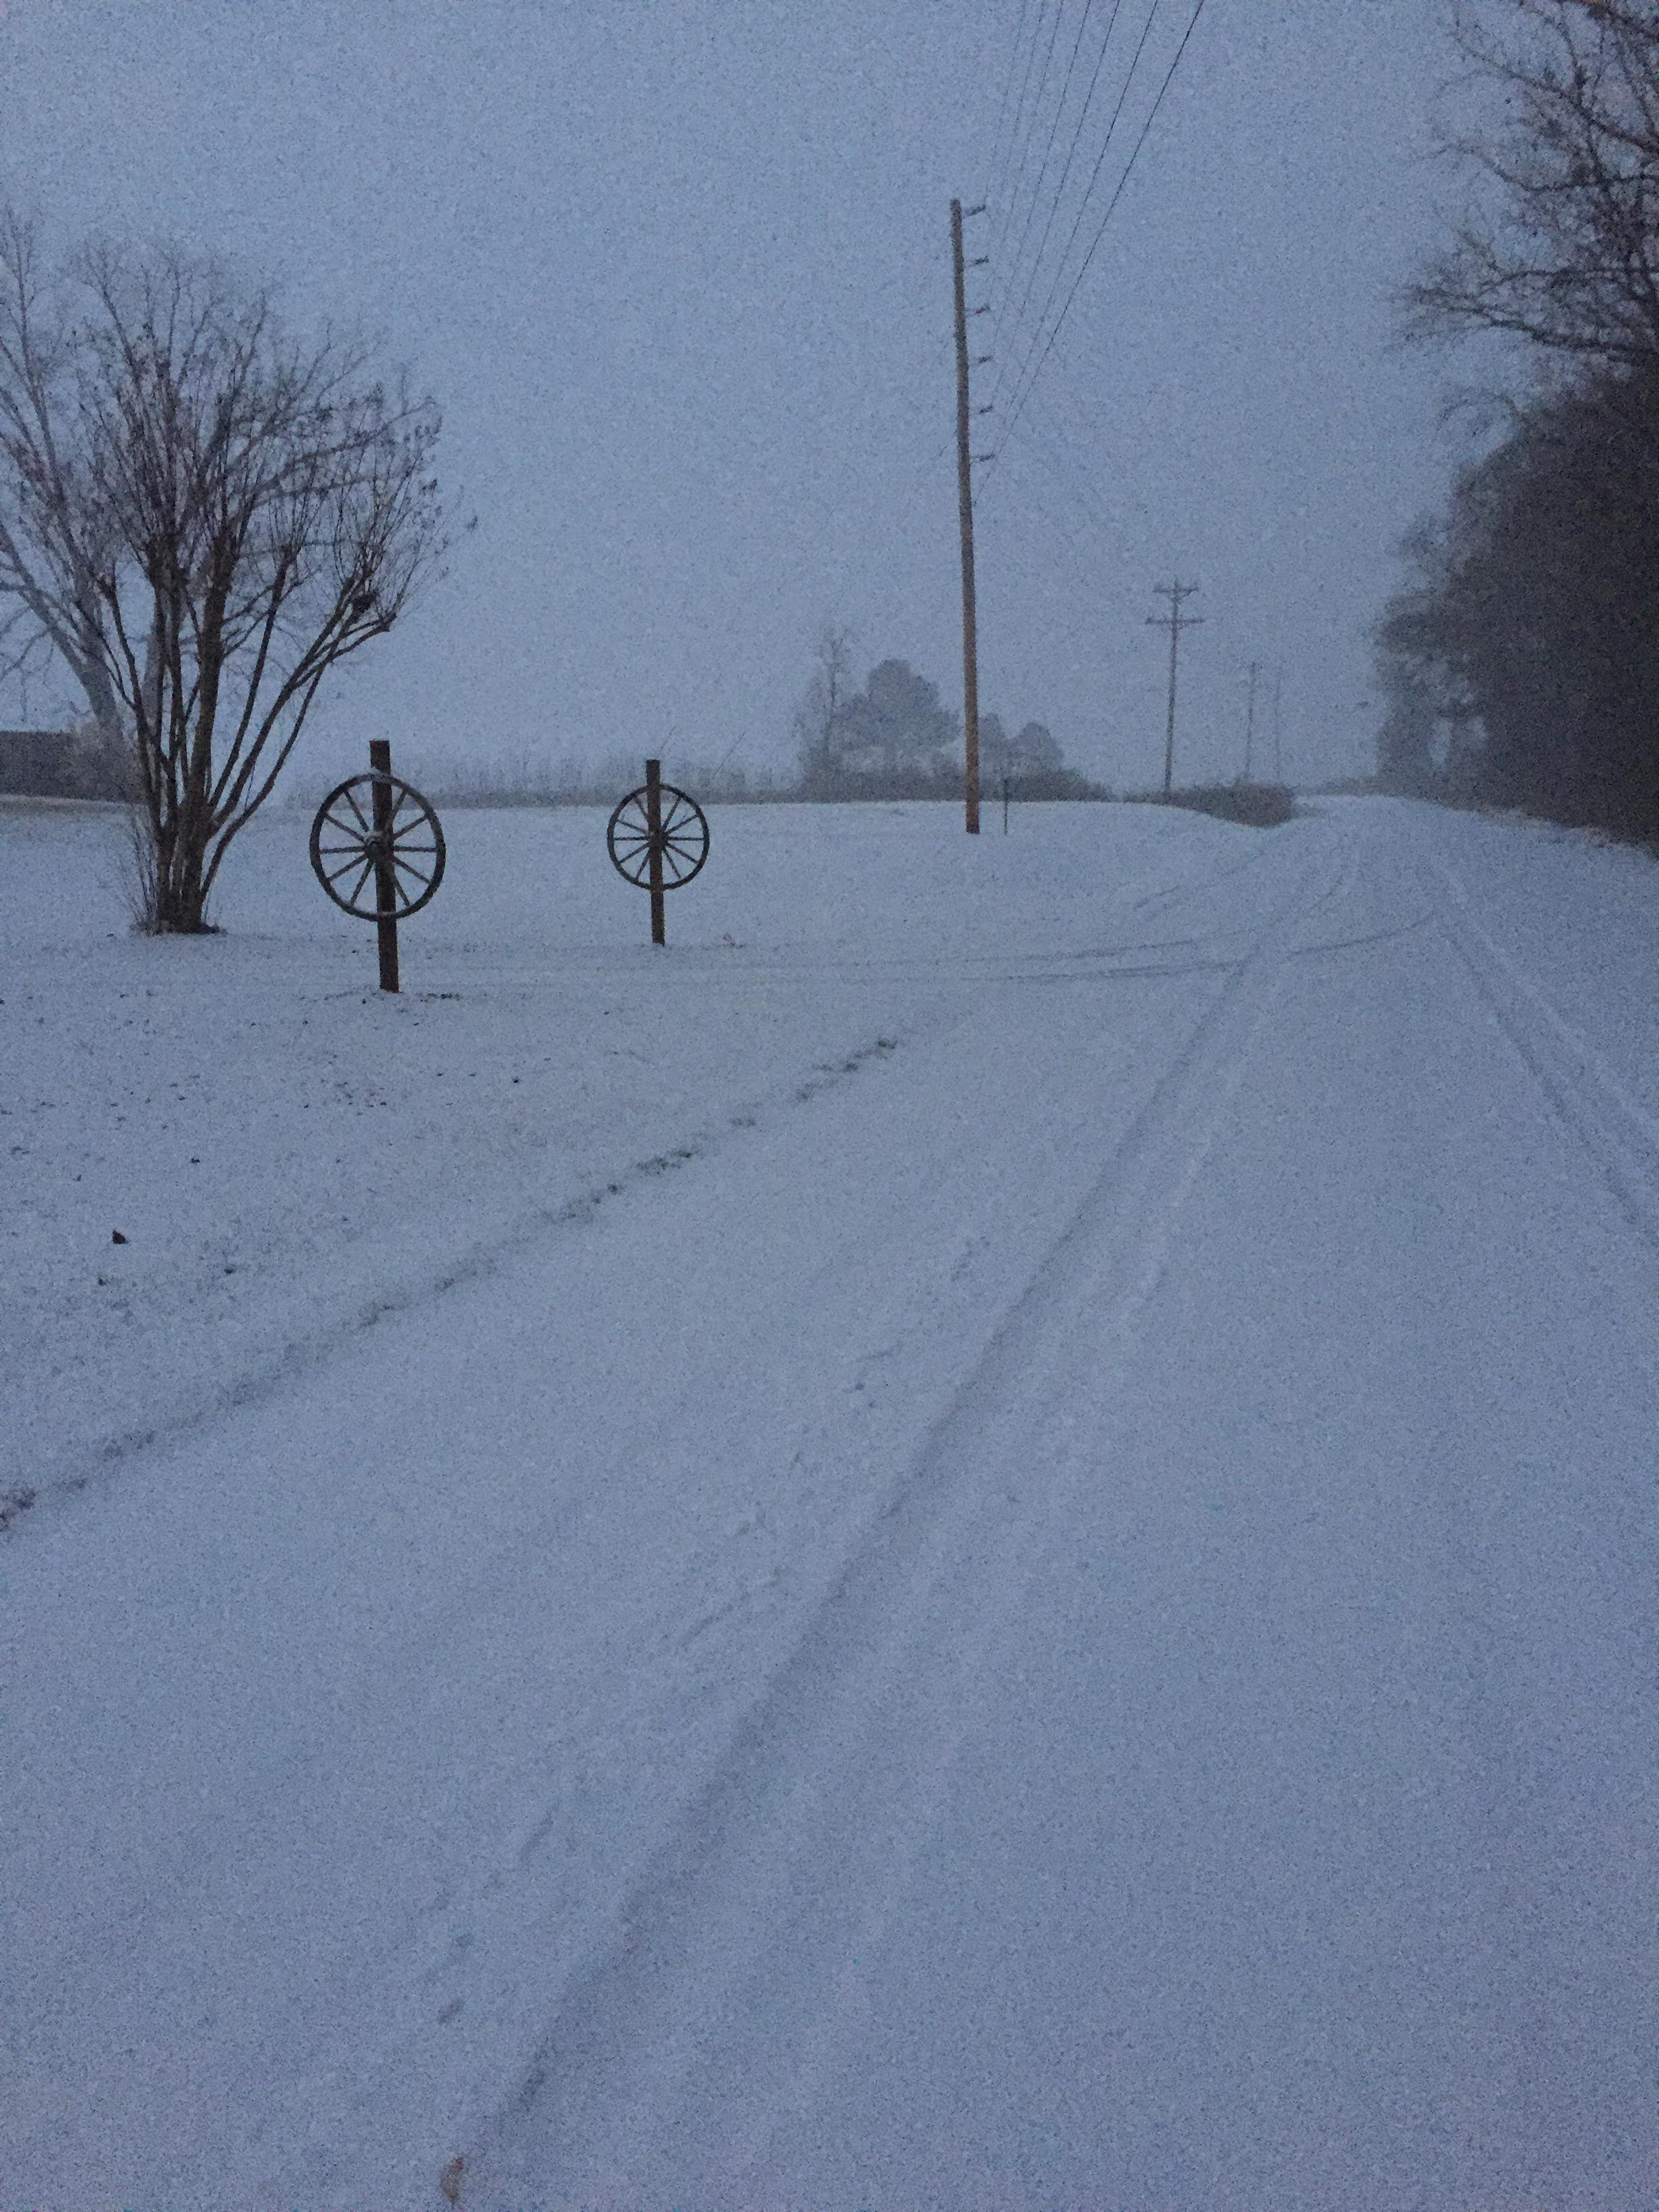 Snow in the country from Latta (Submitted by Allyson Luisetti)